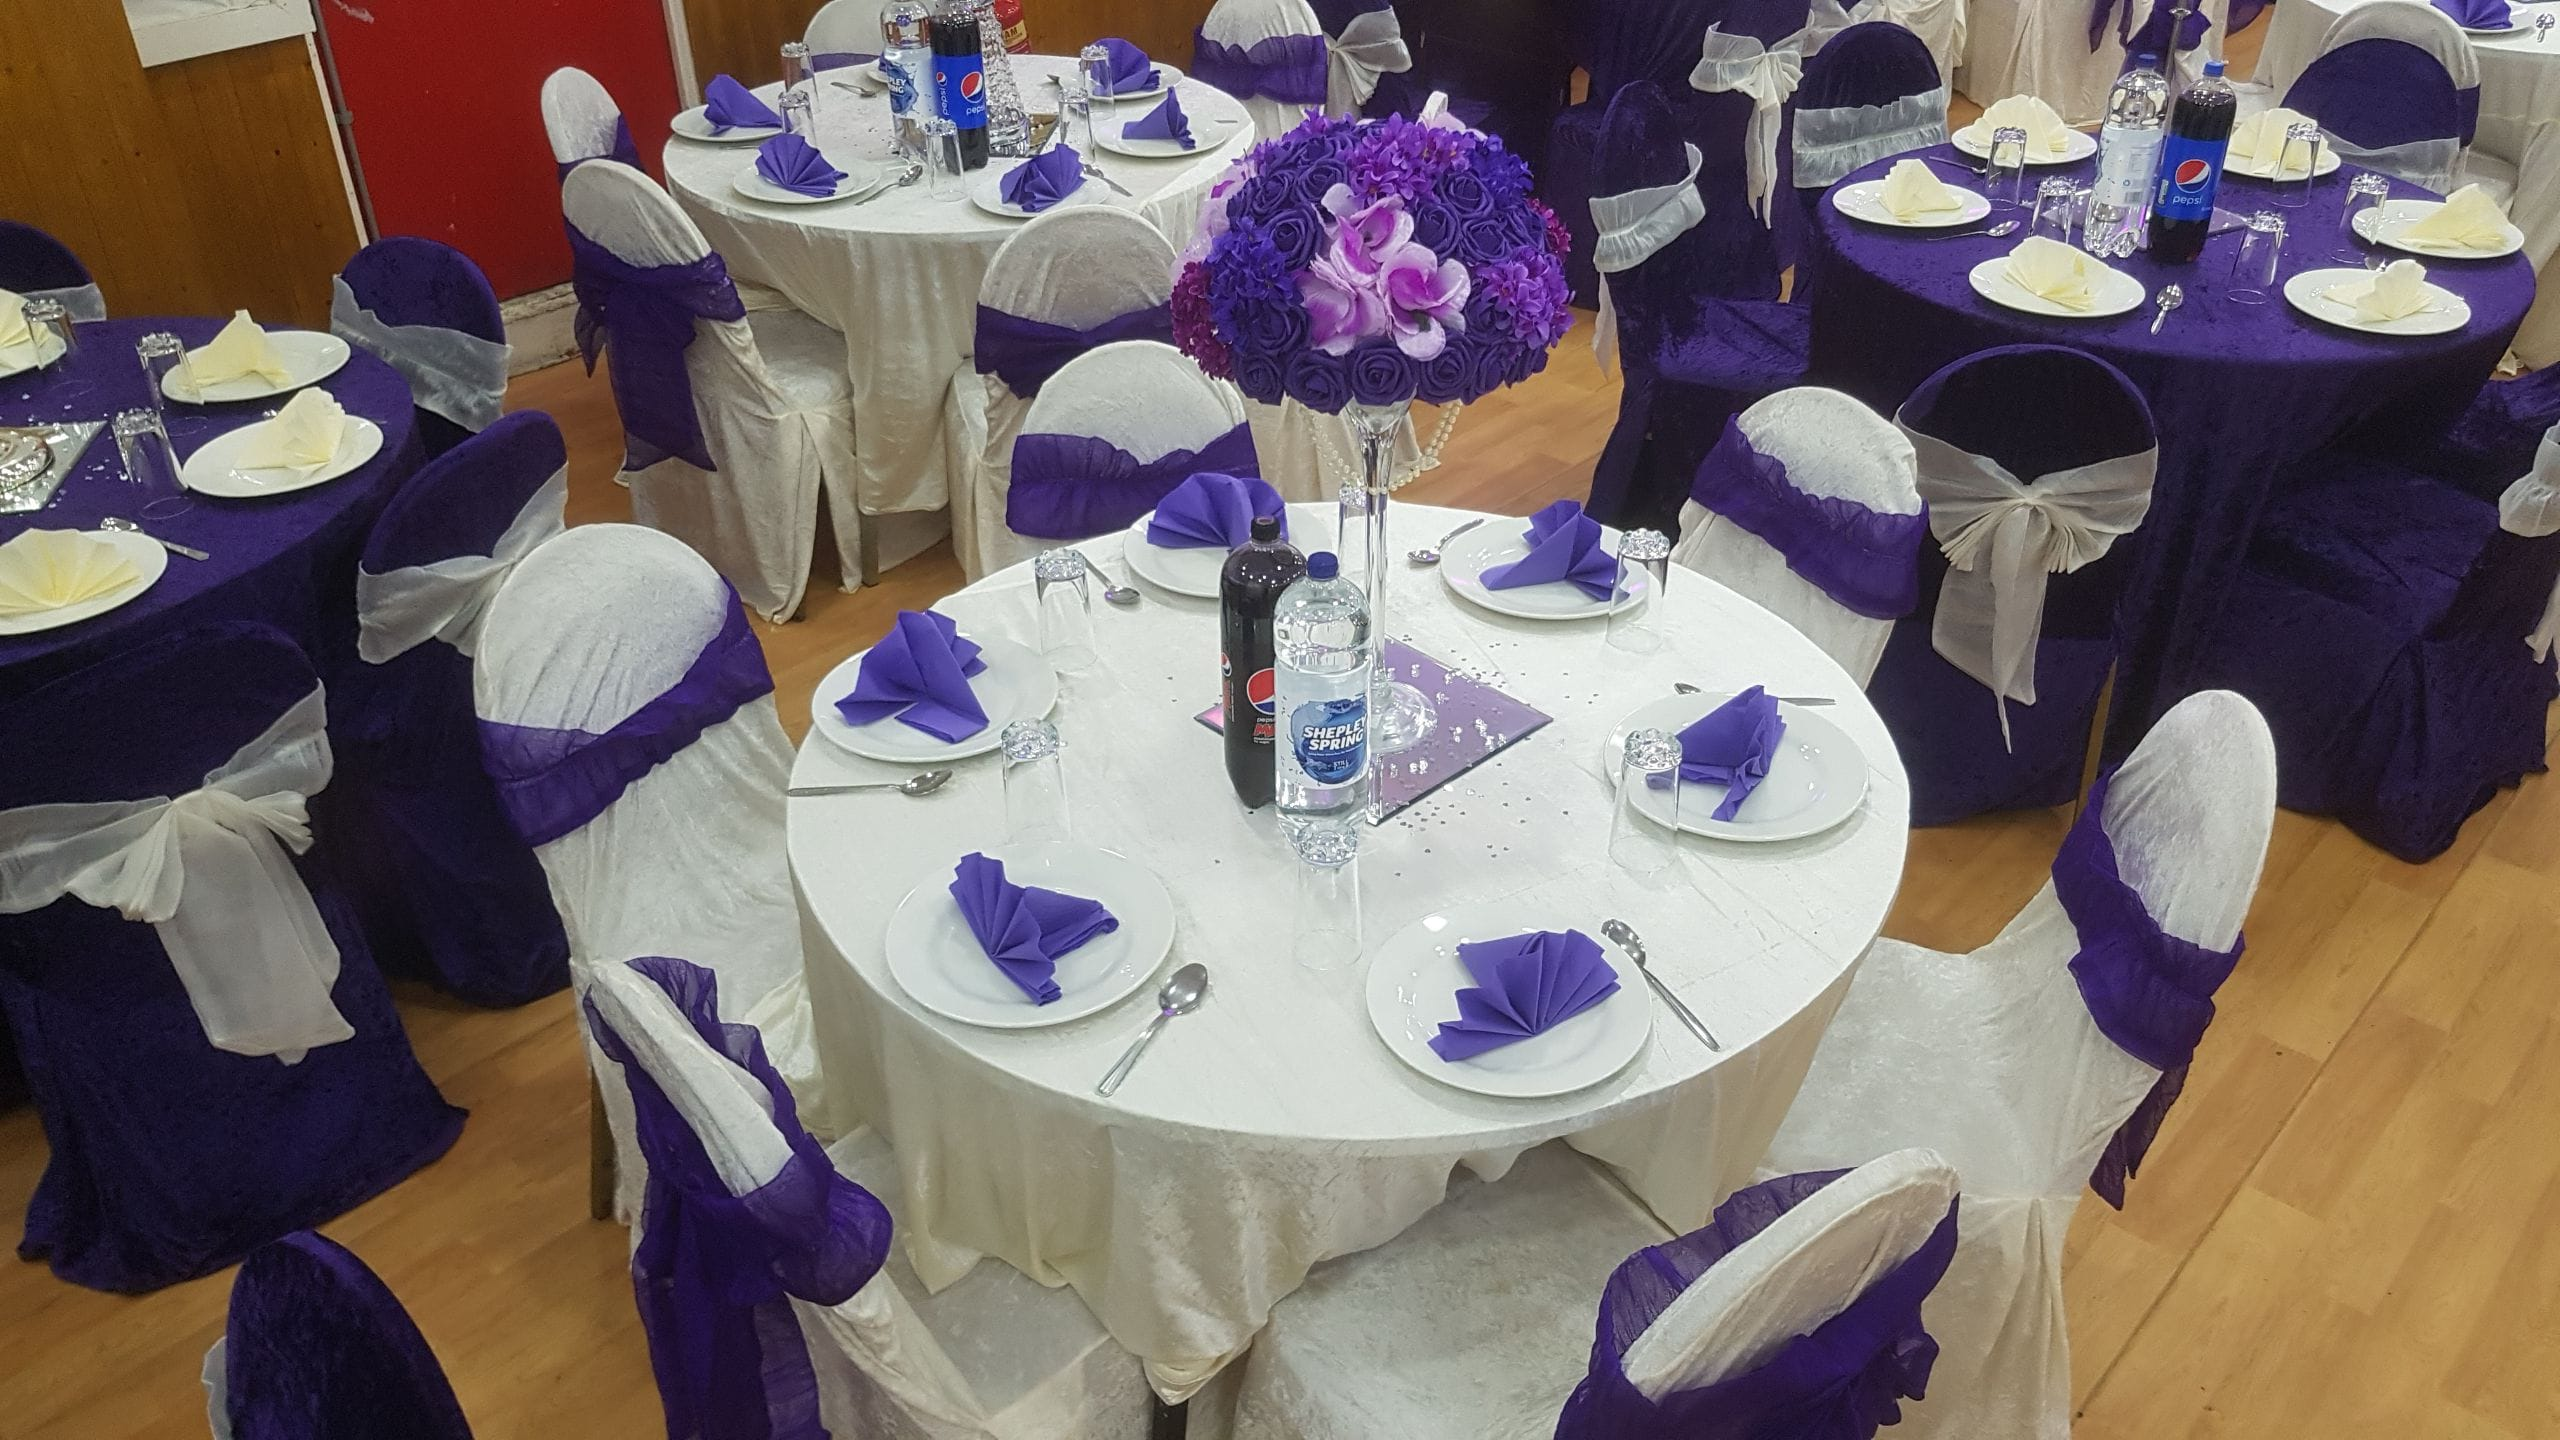 A beautiful purple decoration with a gold package and a floral ceramic centerpiece.